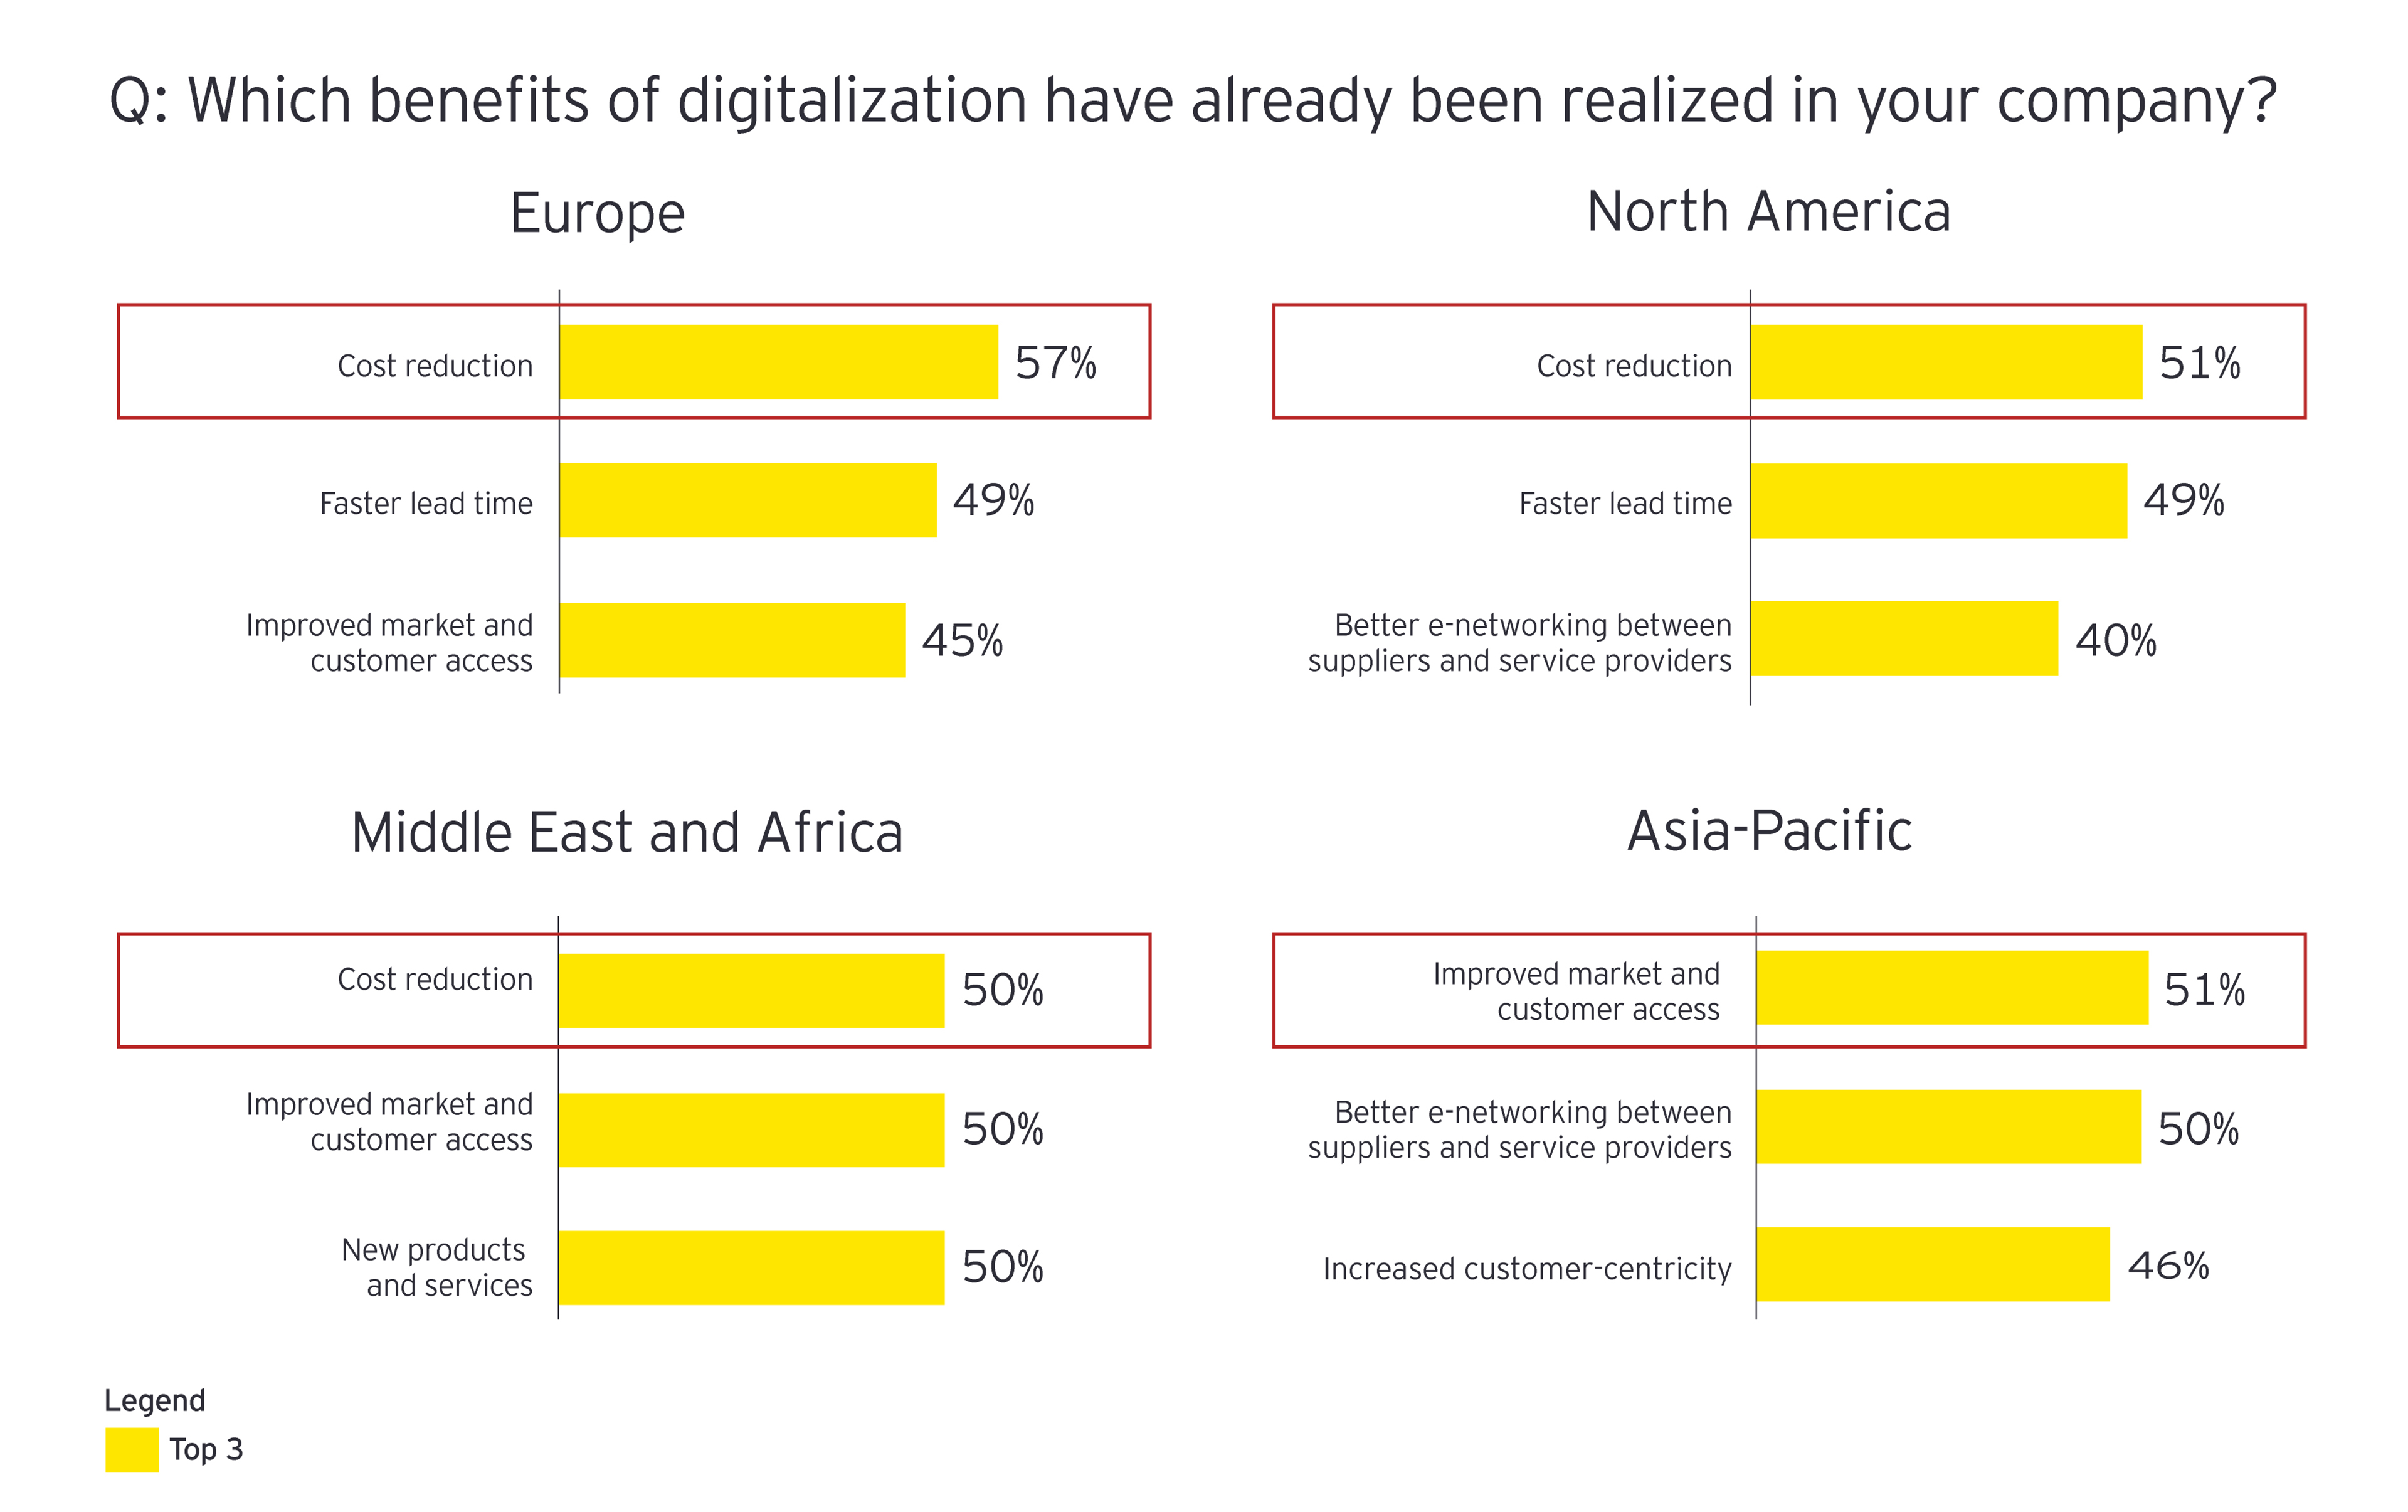 Which benefits of digitalization have already been realized in your company?